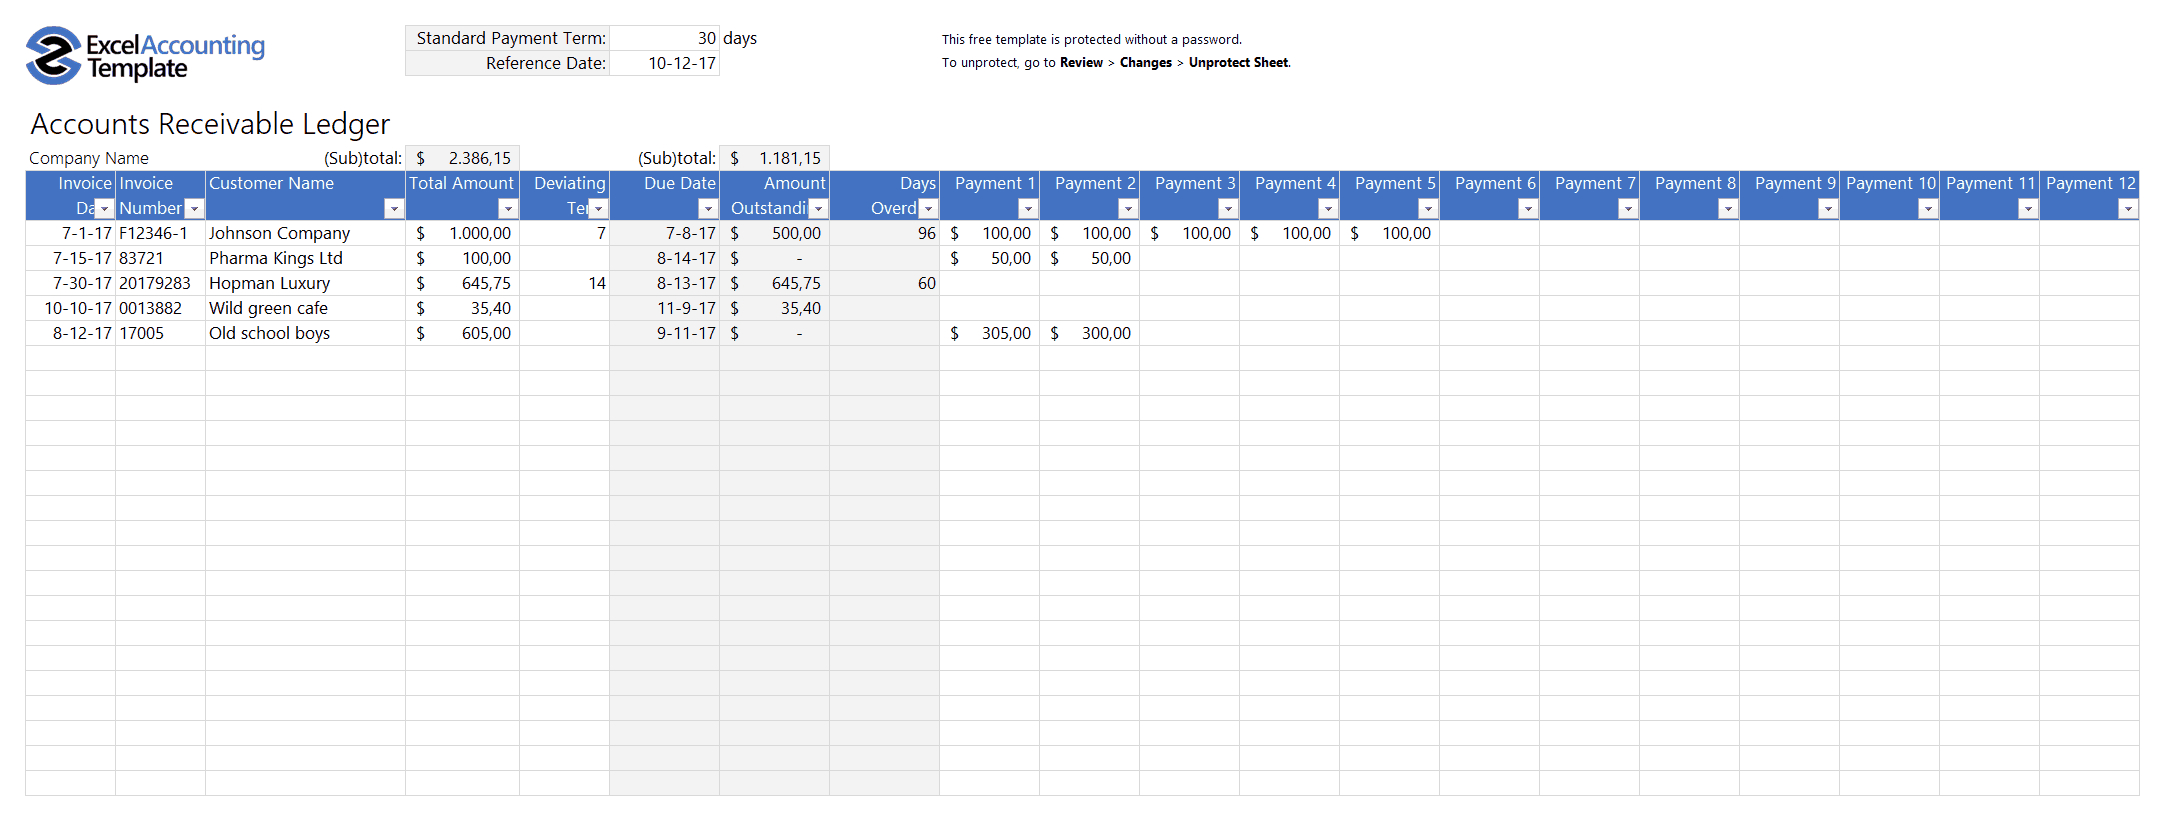 Free Accounting Templates In Excel   Download For Your Business With Accounting Ledger Book Template Free